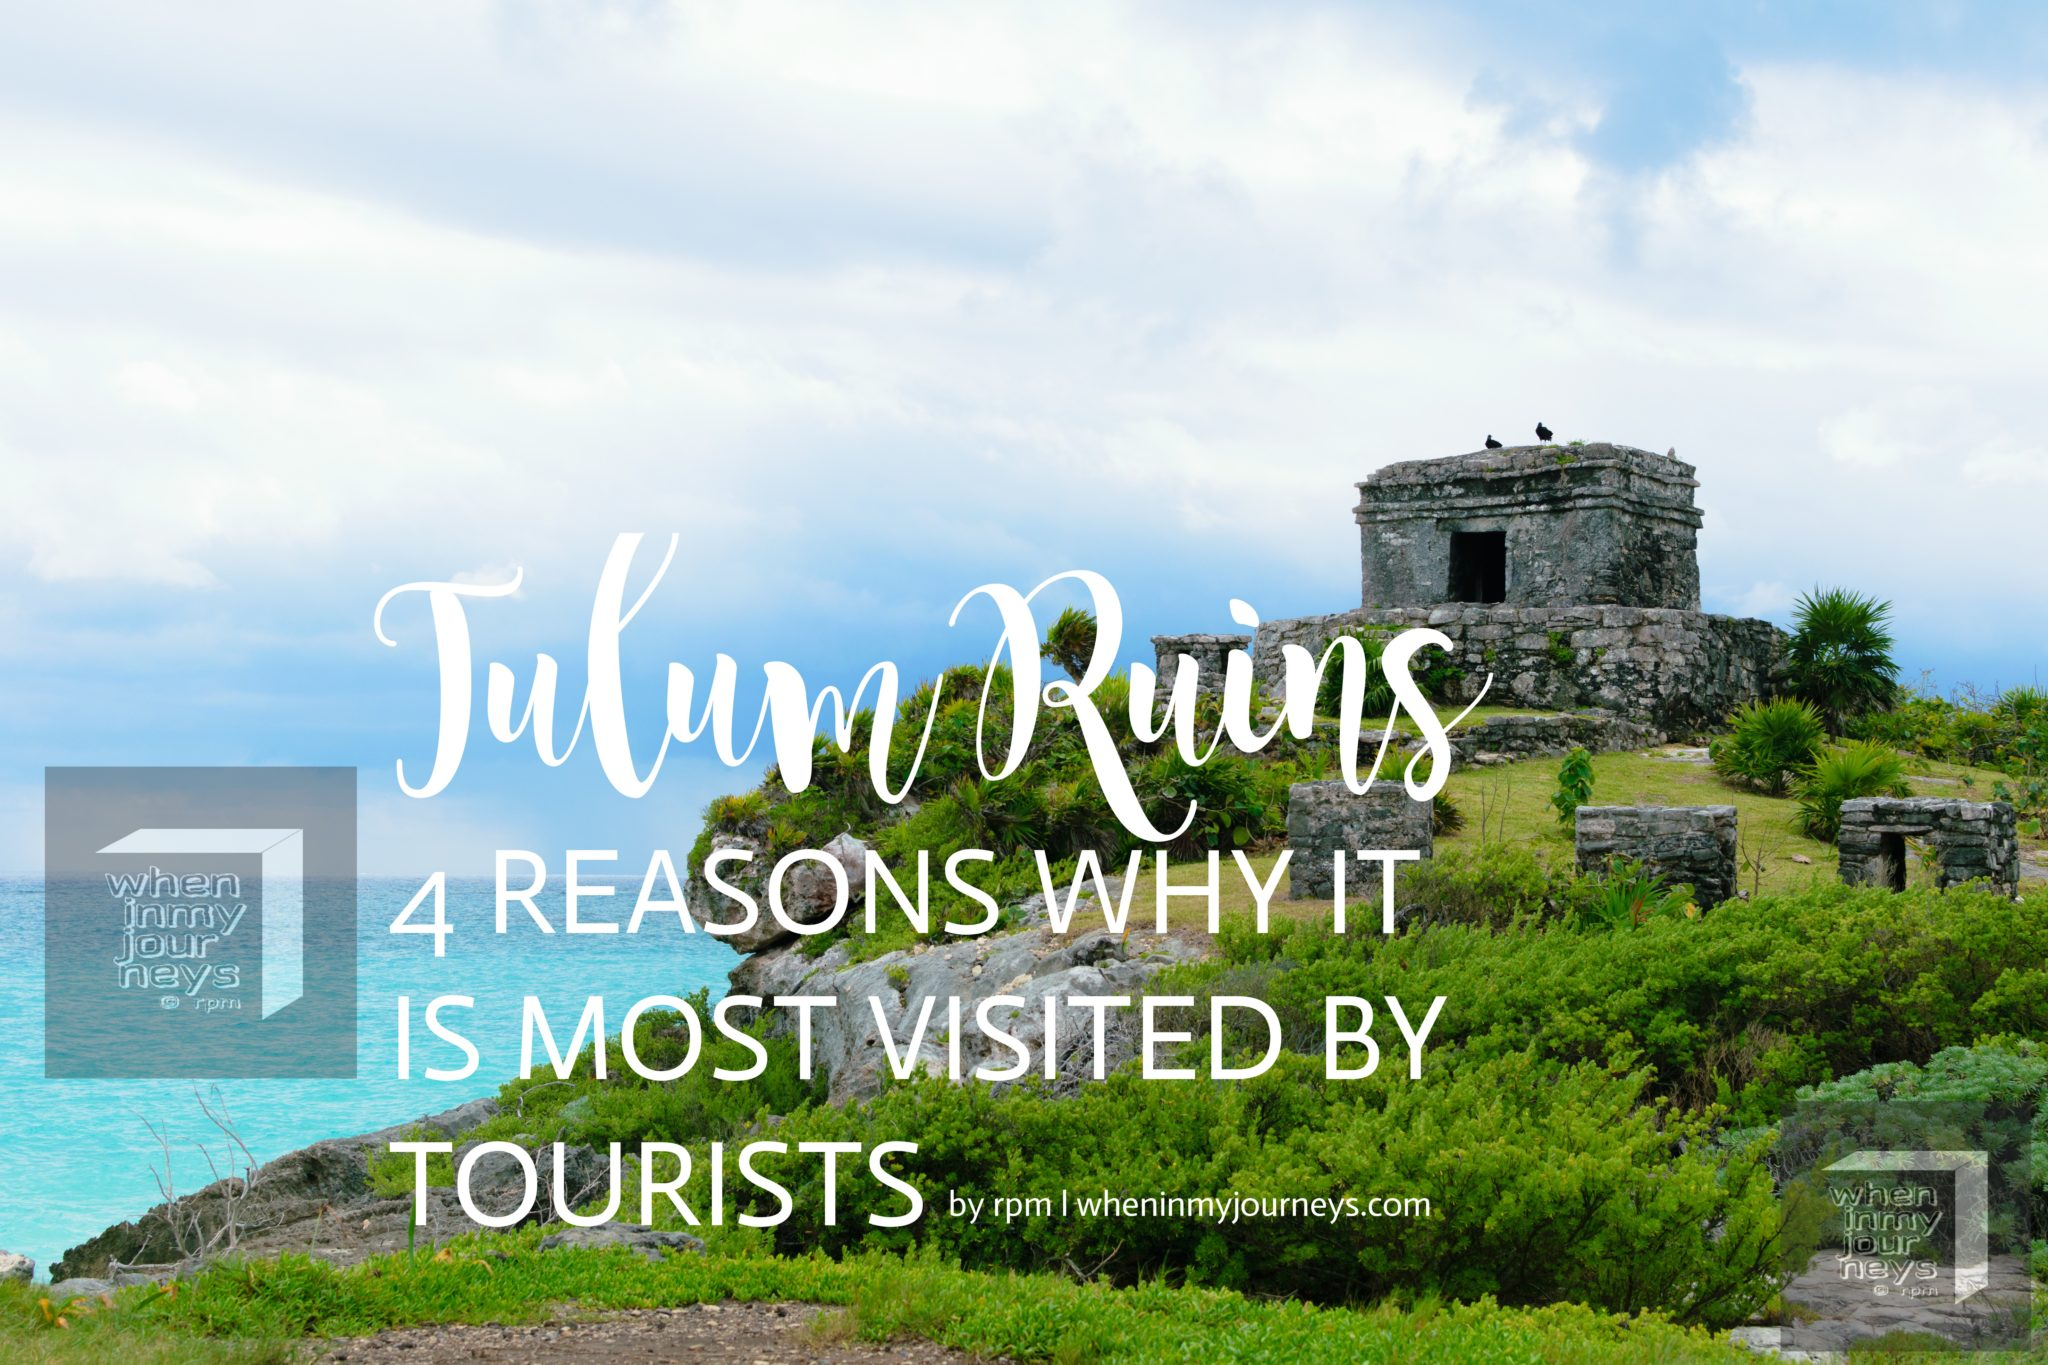 Tulum Ruins 4 Reasons Why It is Most Visited by Tourists